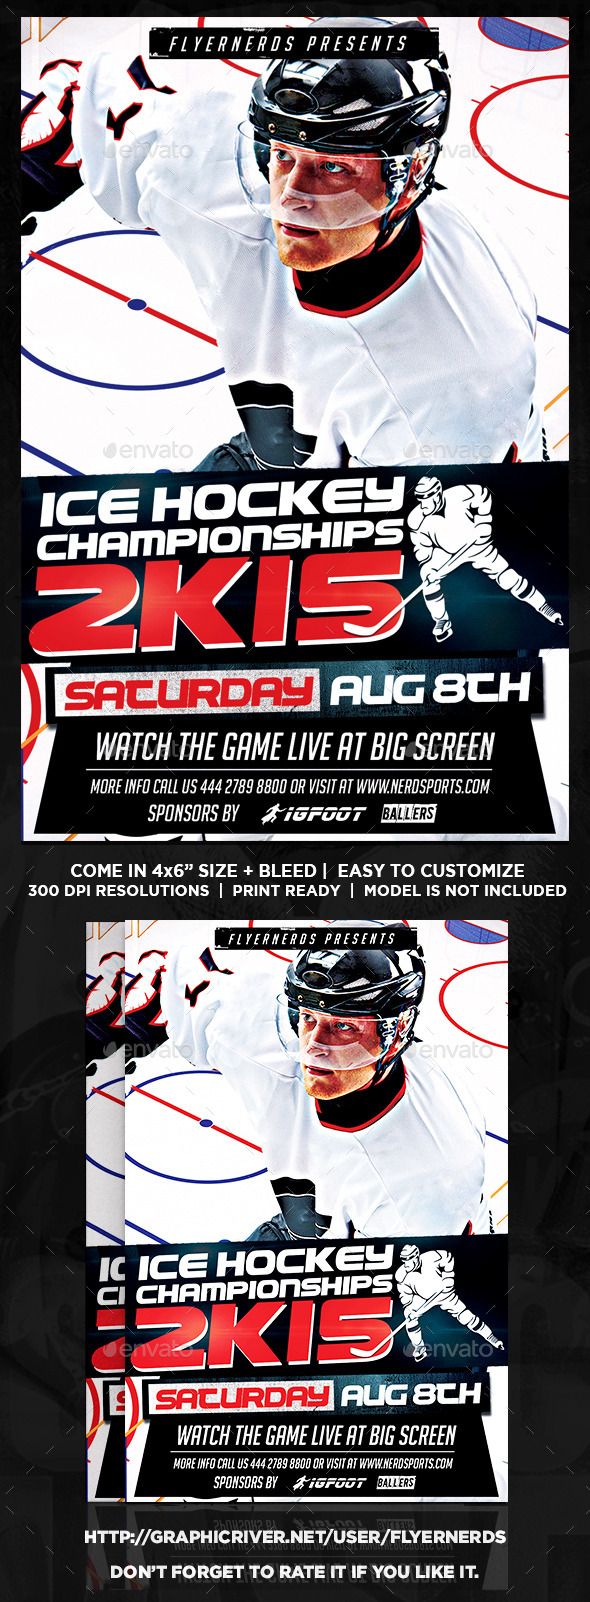 Ice Hockey Championships 2K15 Sports Flyer - Sports Events